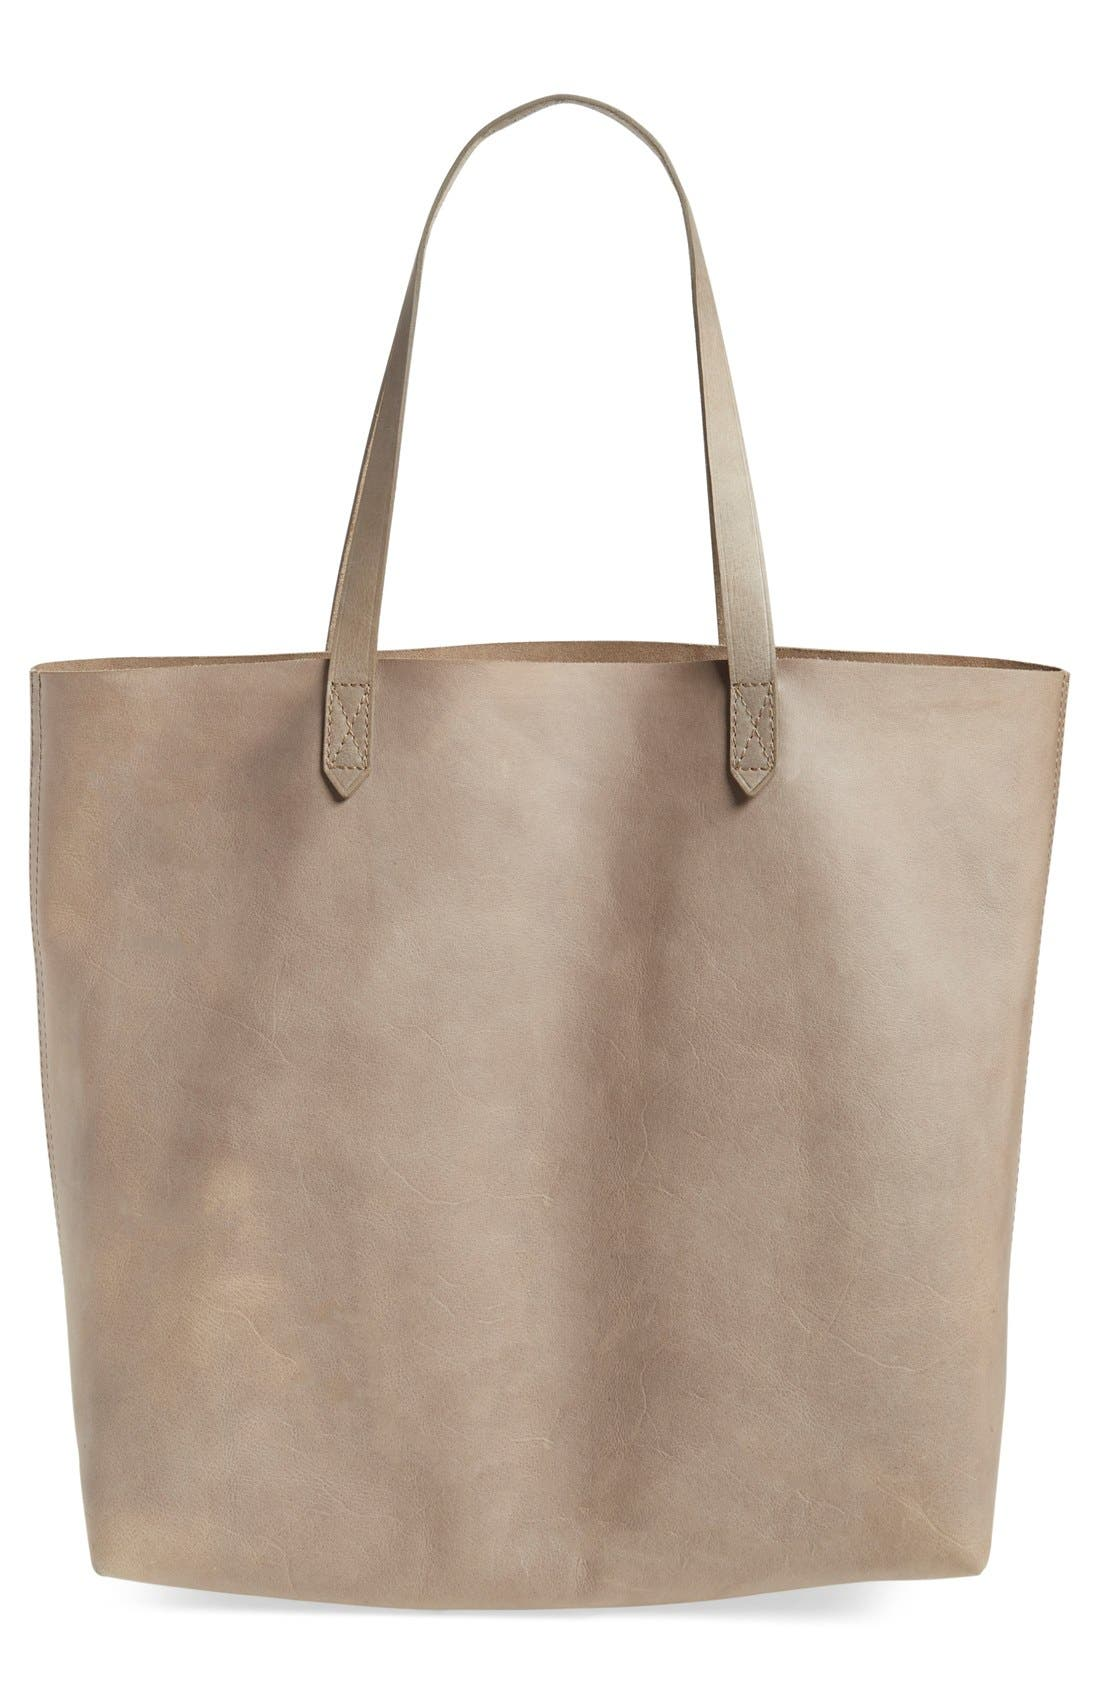 Main Image - Madewell 'Transport' Leather Tote